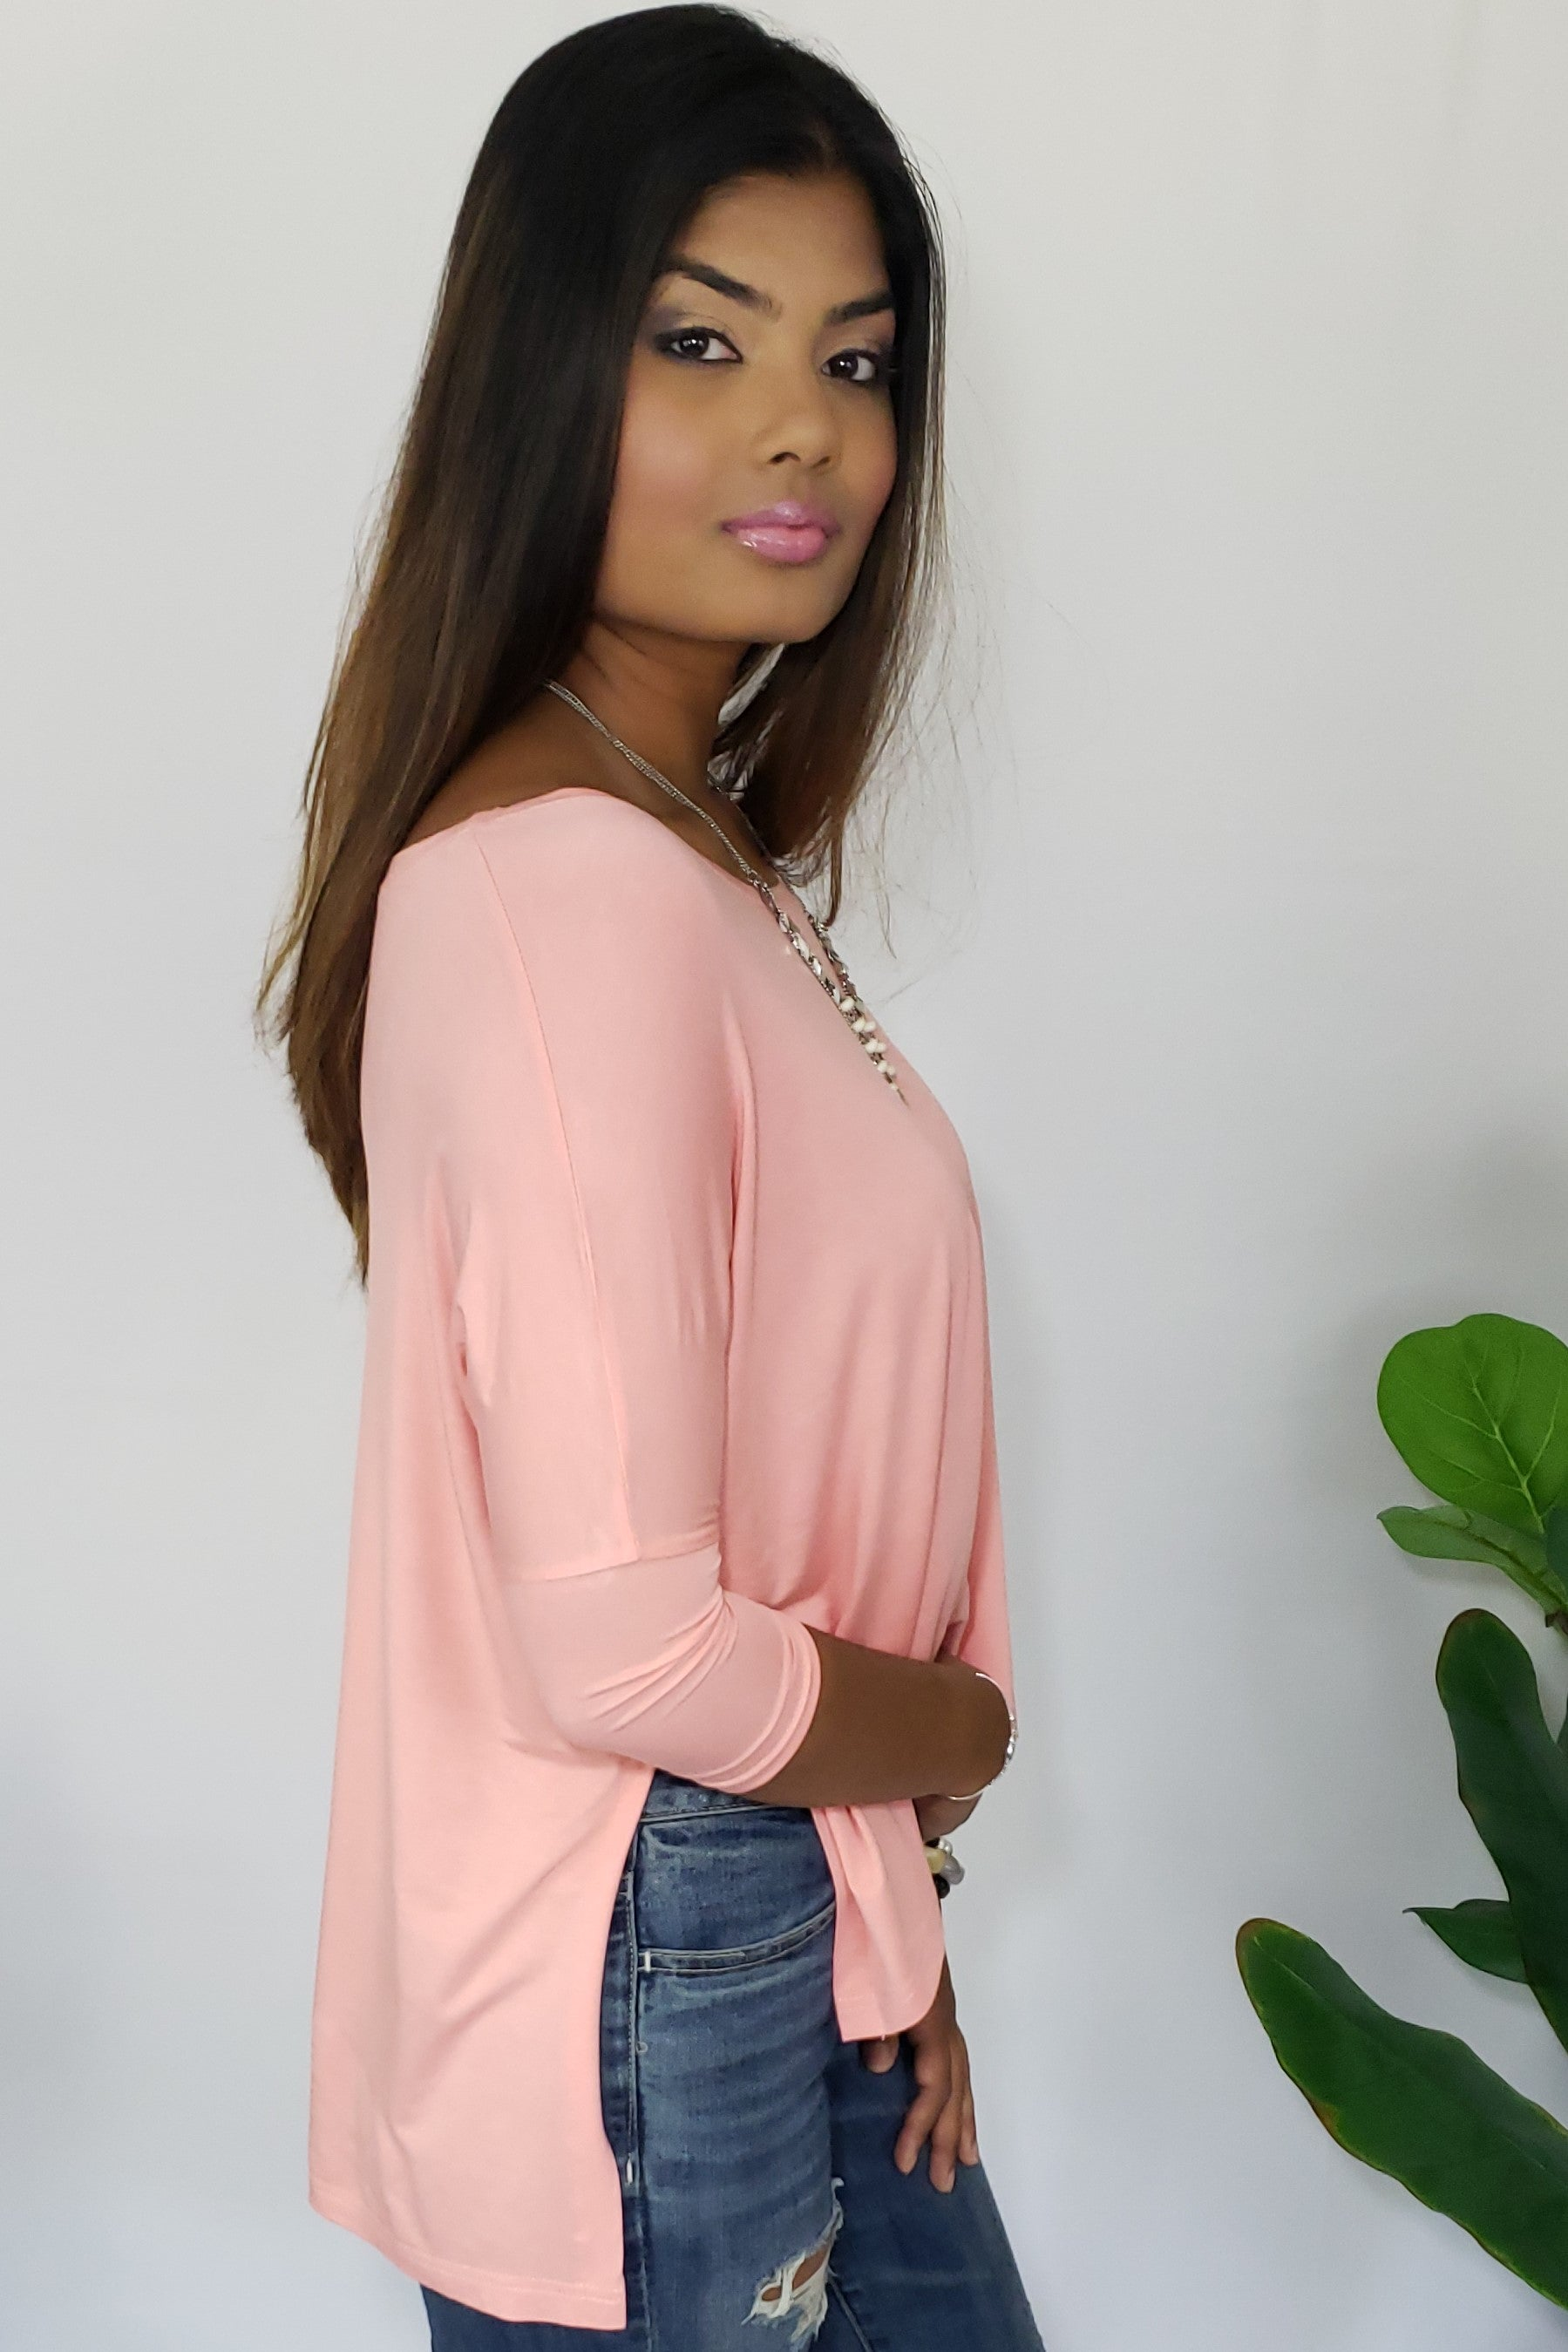 Monica She Candoit Sweet & Comfy T-Shirt in Bright Peach - Houzz of DVA Boutique